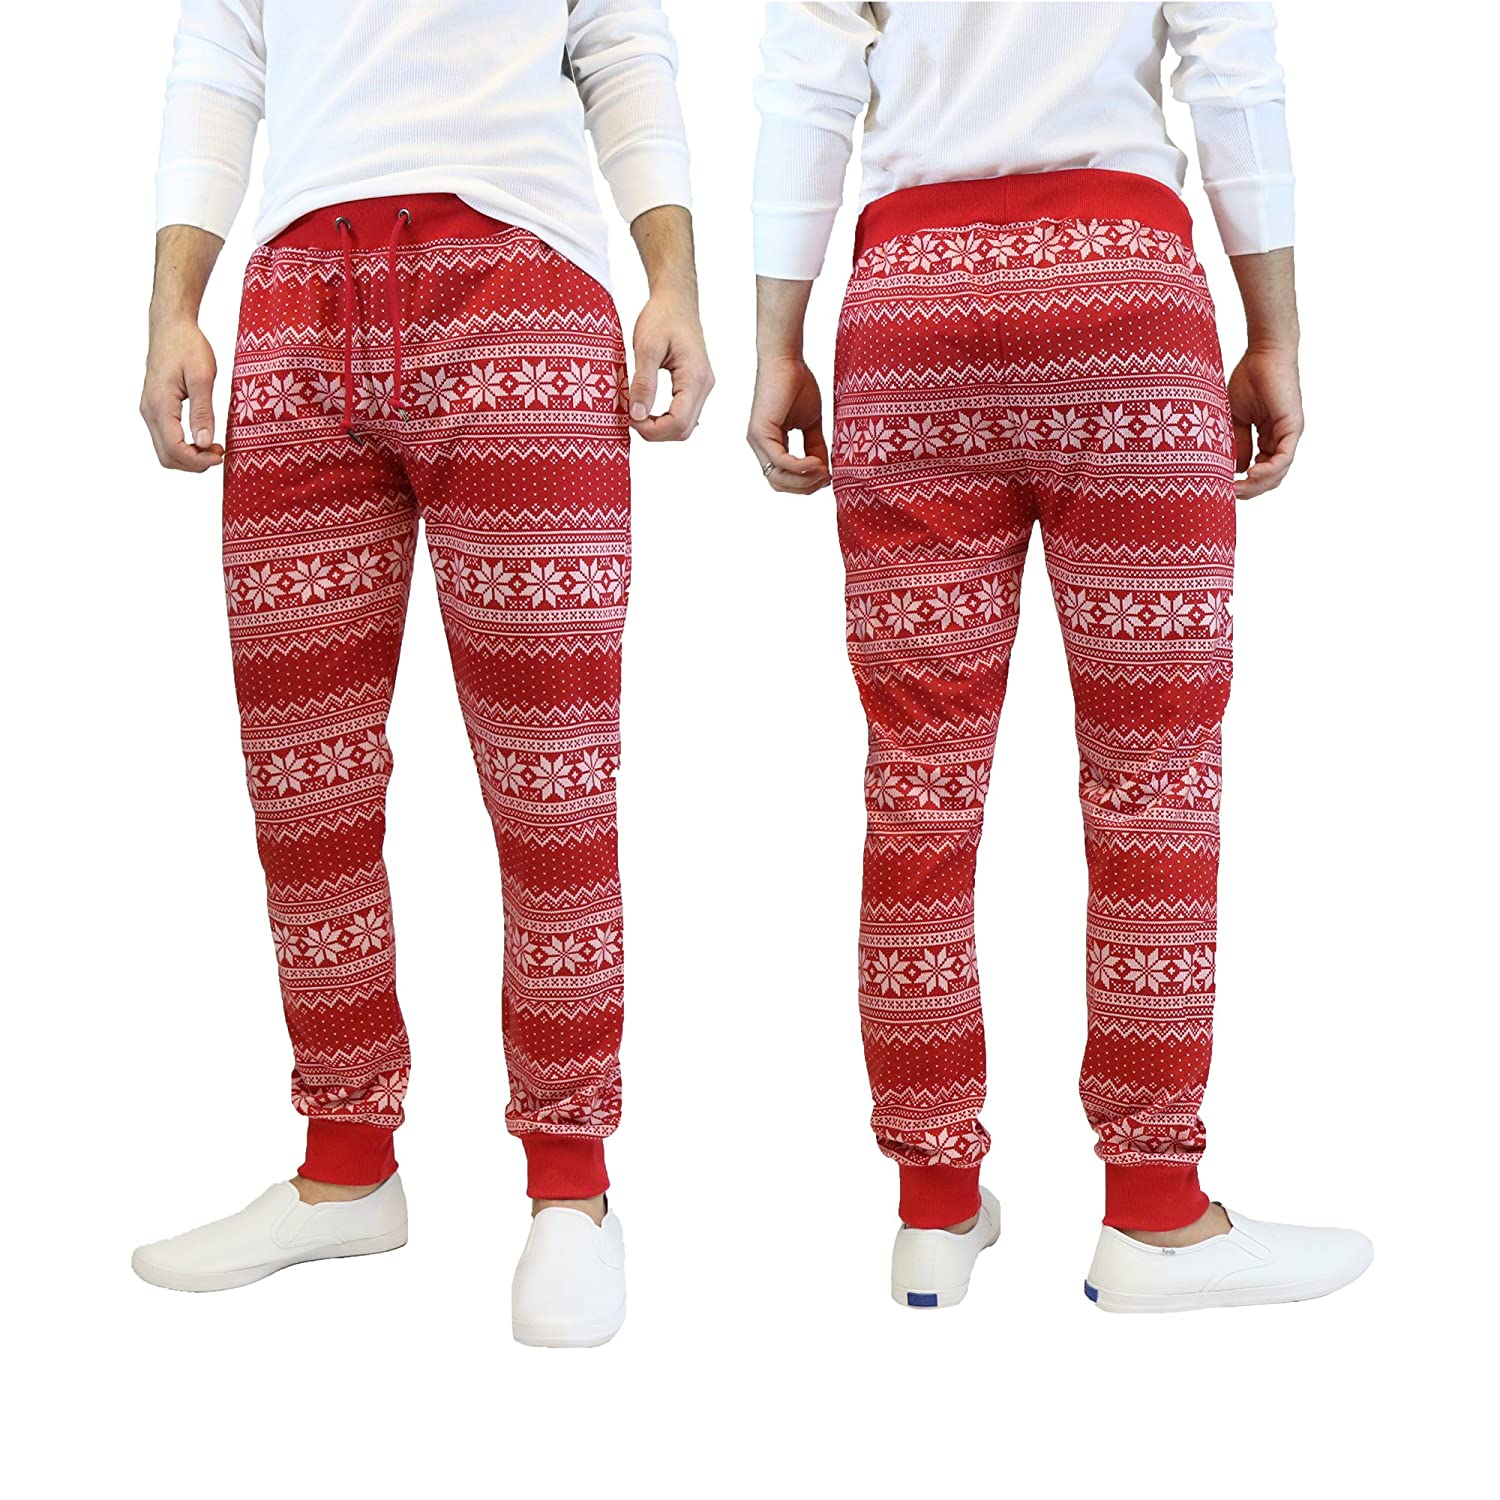 bc17bc5e2f2f7 PREMIUM QUALITY- Don't compromise with quality. Check this Men's French  Terry Christmas Joggers Pants. Premium Fit And Ultra Comfort.